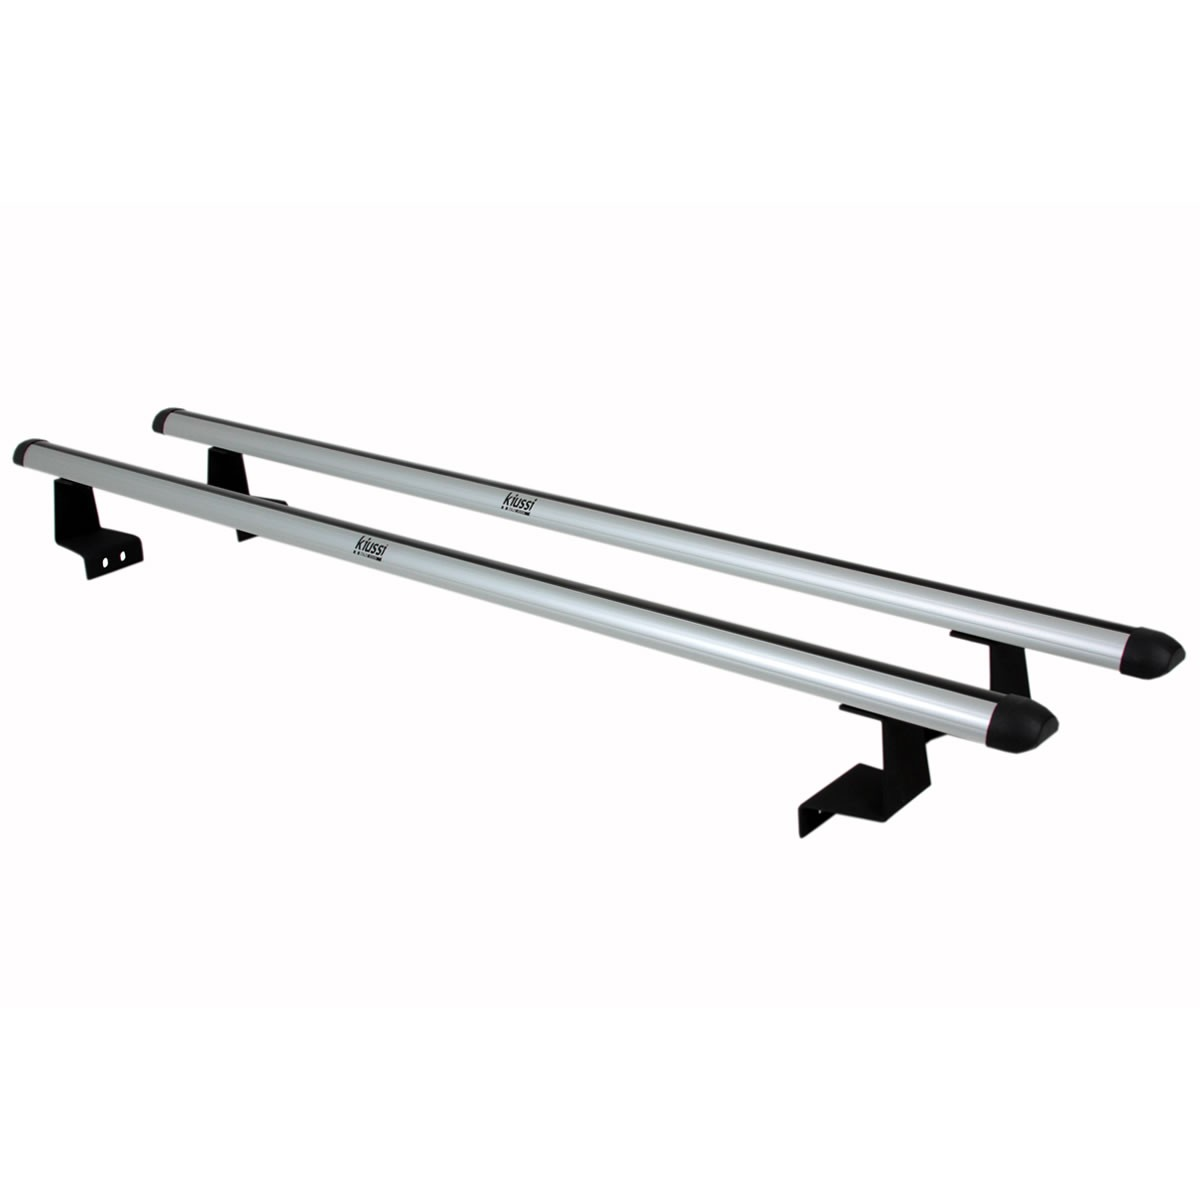 Rack Travessa de Caçamba Pick-up - Kiussi Dolomiti 180cm - Prata